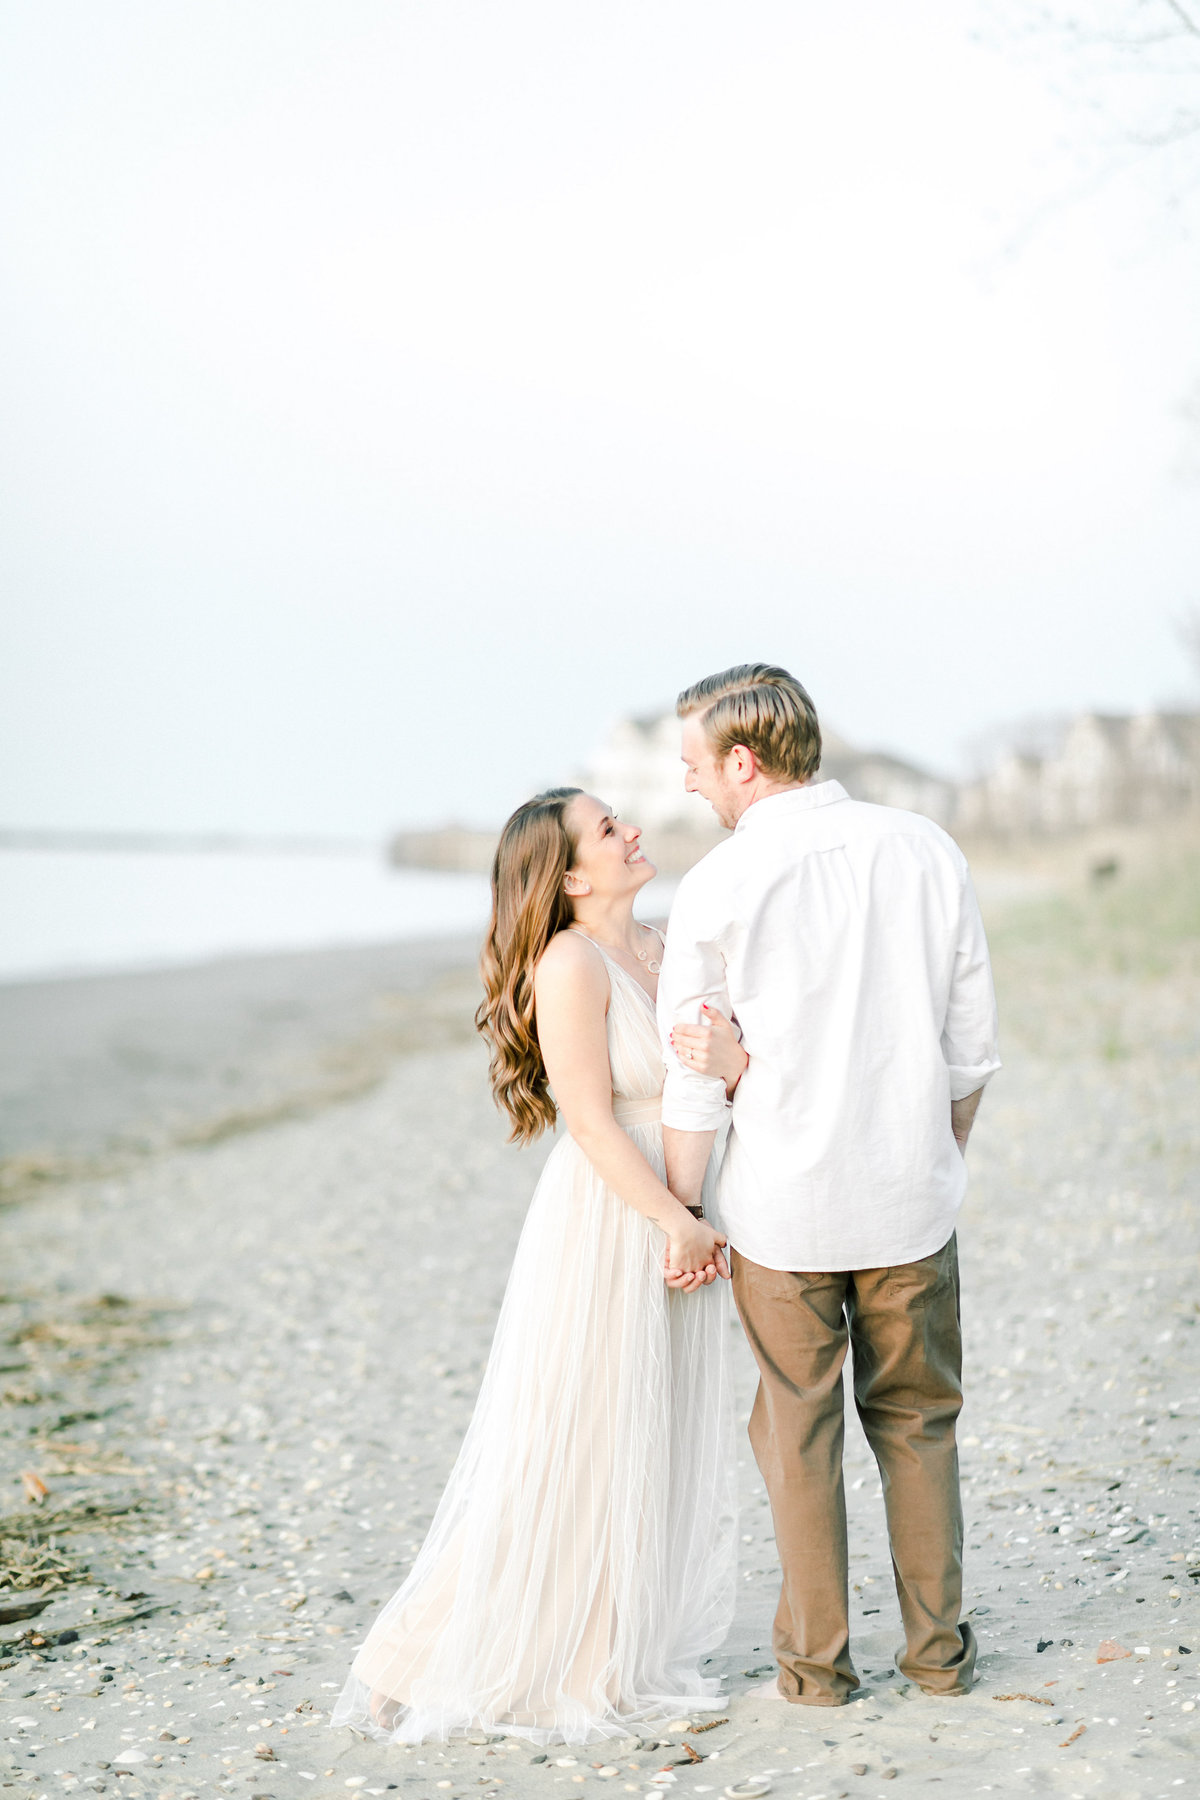 Ashley & Lou_Engaged_Beach_1125